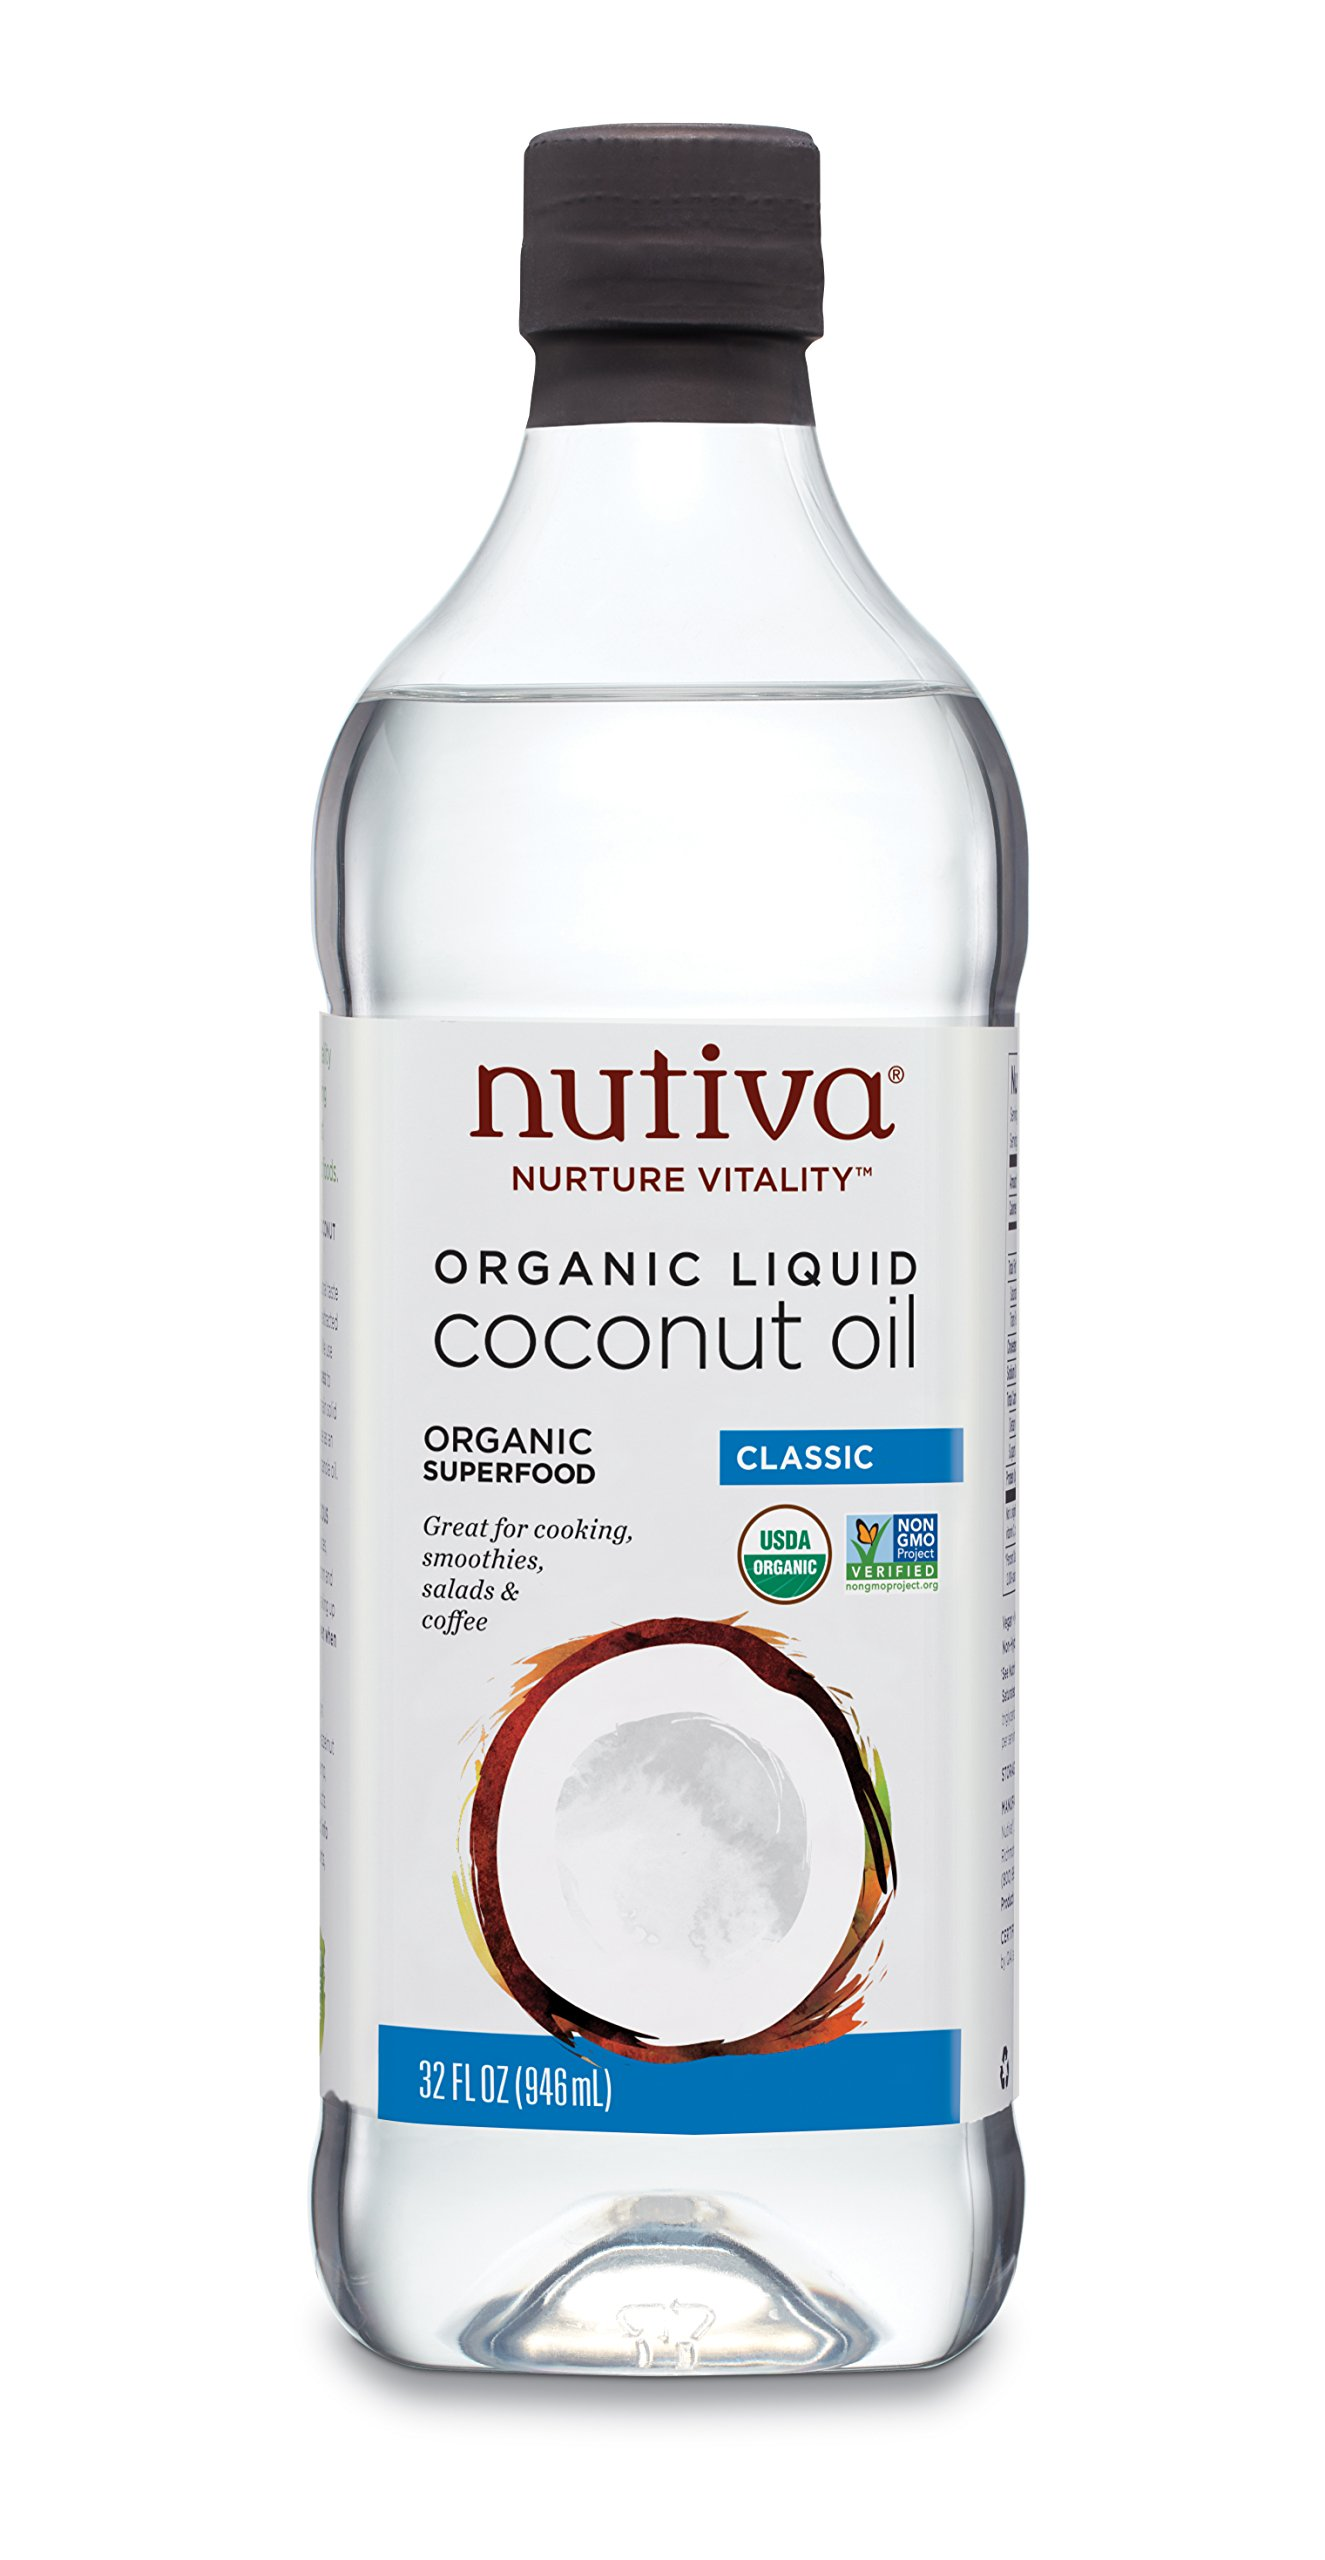 Nutiva Organic, Unrefined, Liquid Coconut Oil from Fresh, non-GMO, Sustainably Farmed Coconuts, 32 Fluid Ounces